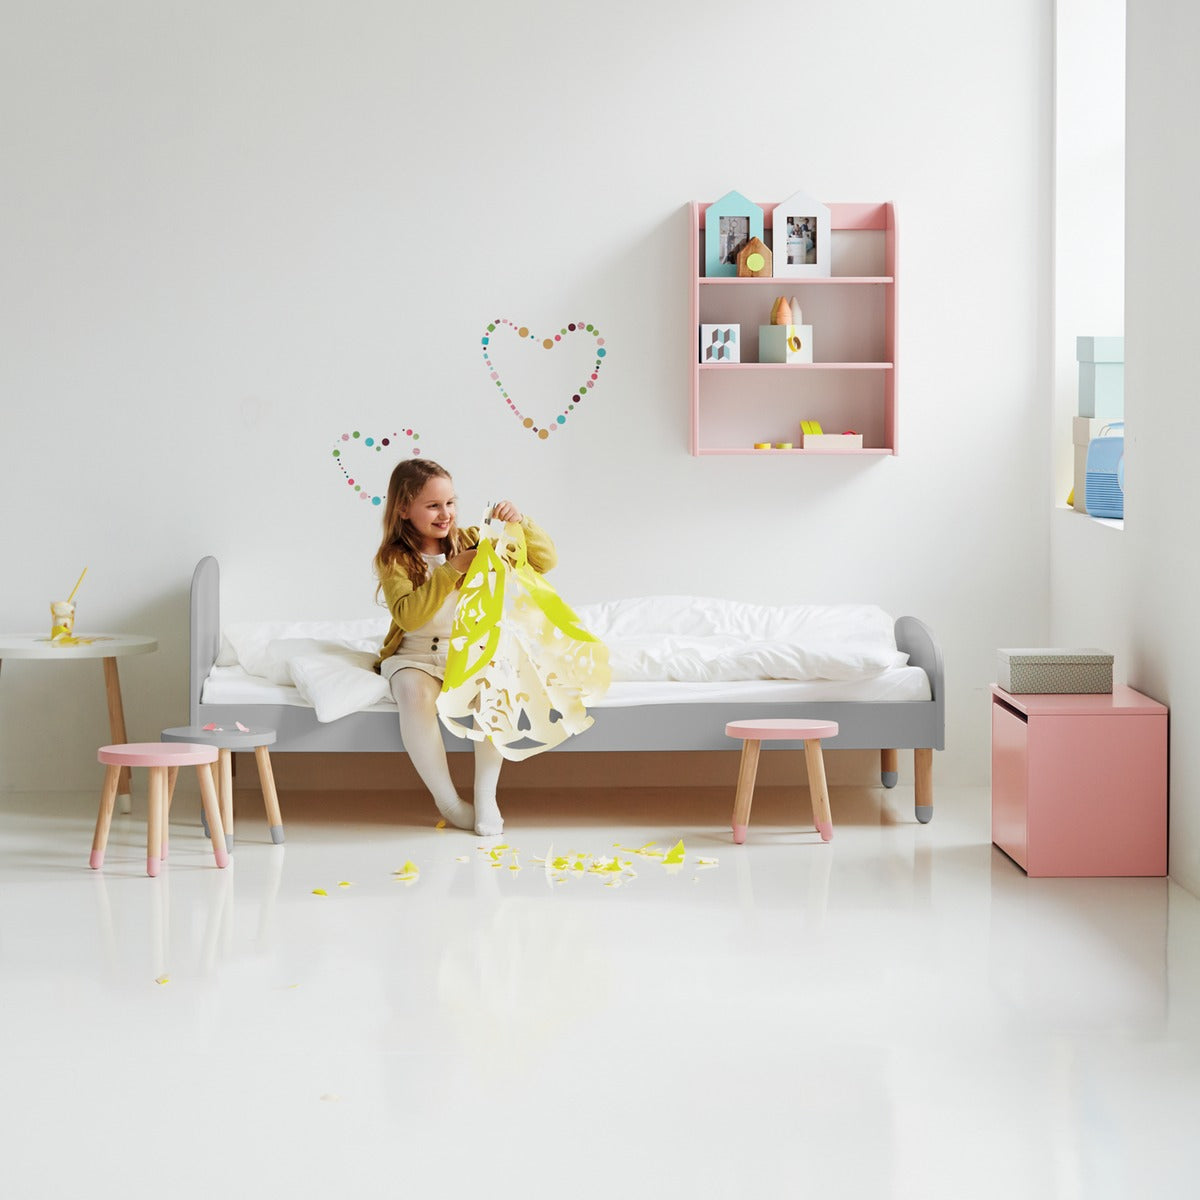 flexa kinderbett play in grau online kaufen kidswoodlove. Black Bedroom Furniture Sets. Home Design Ideas